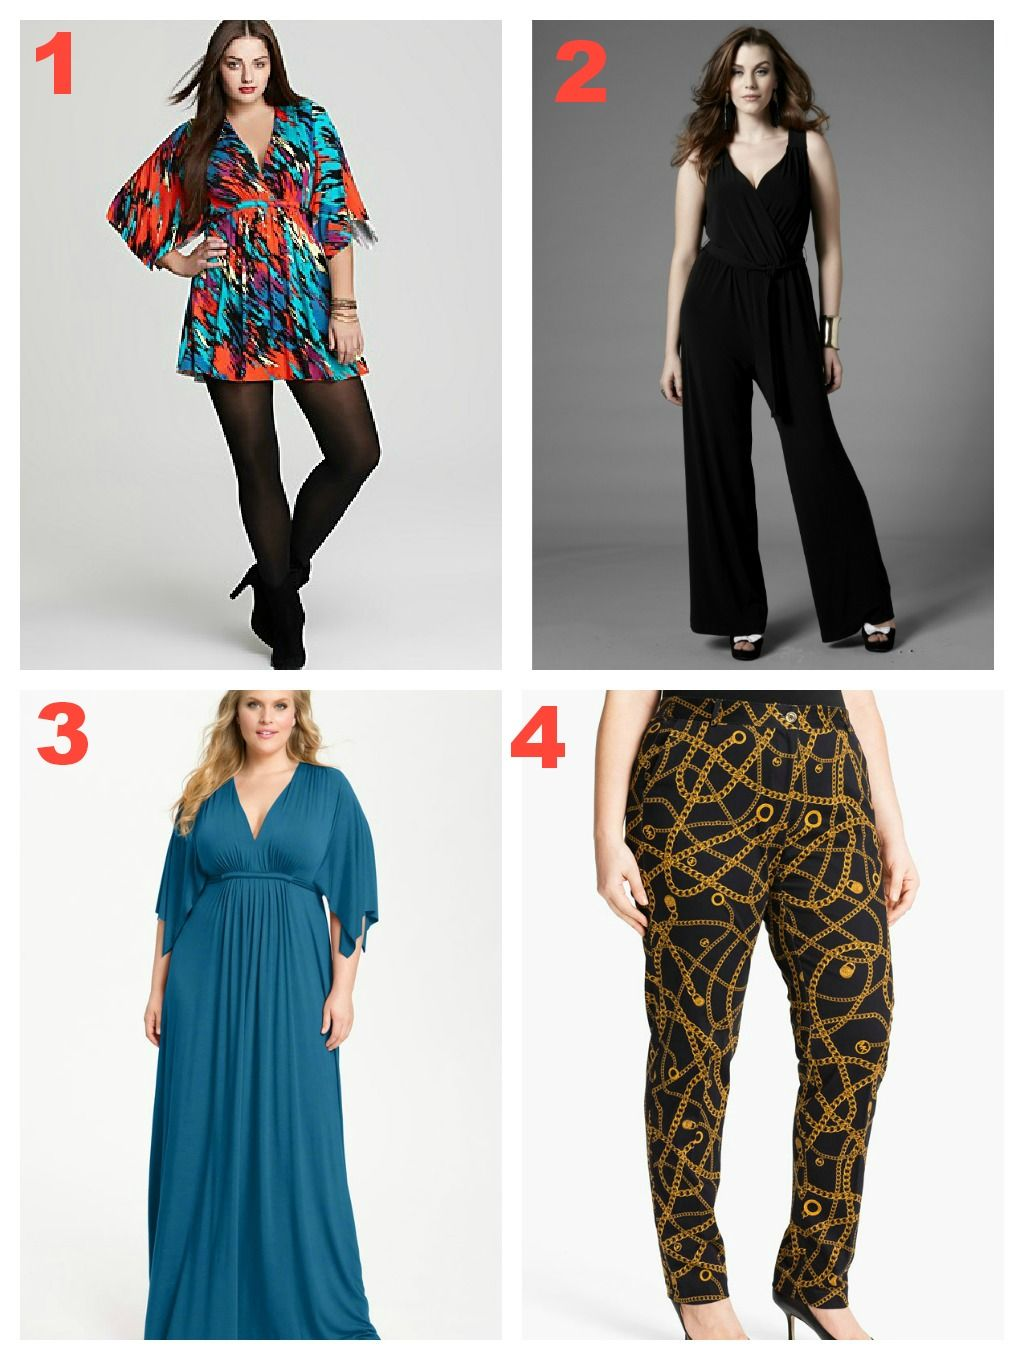 #FromTheBlog The utterly ridiculous things that I totally want.... http://atxslavetofashion.com/my-wednesday-shopping-cart-the-utterly-ridiculous/